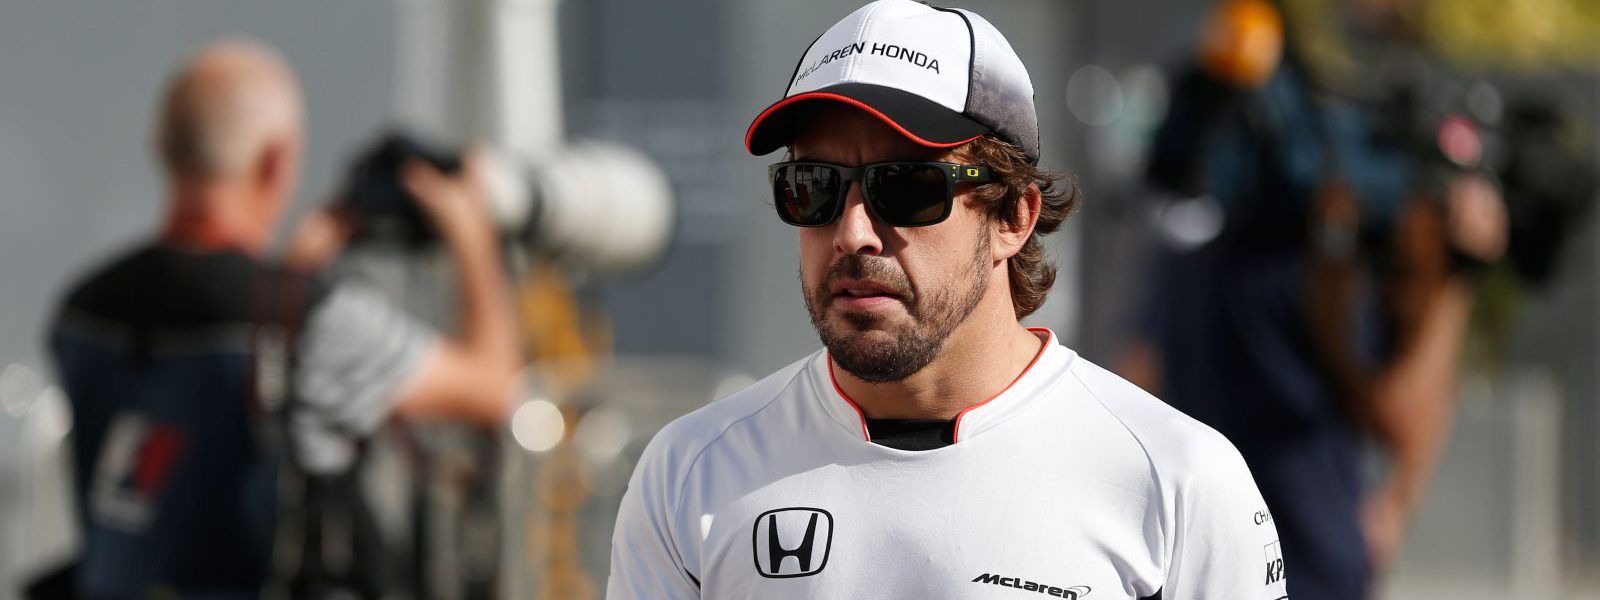 Motorsports: FIA Formula One World Championship 2016, Grand Prix of Singapore,  #14 Fernando Alonso (ESP, McLaren Honda Formula 1 Team),  *** Local Caption *** +++ www.hoch-zwei.net +++ copyright: HOCH ZWEI +++